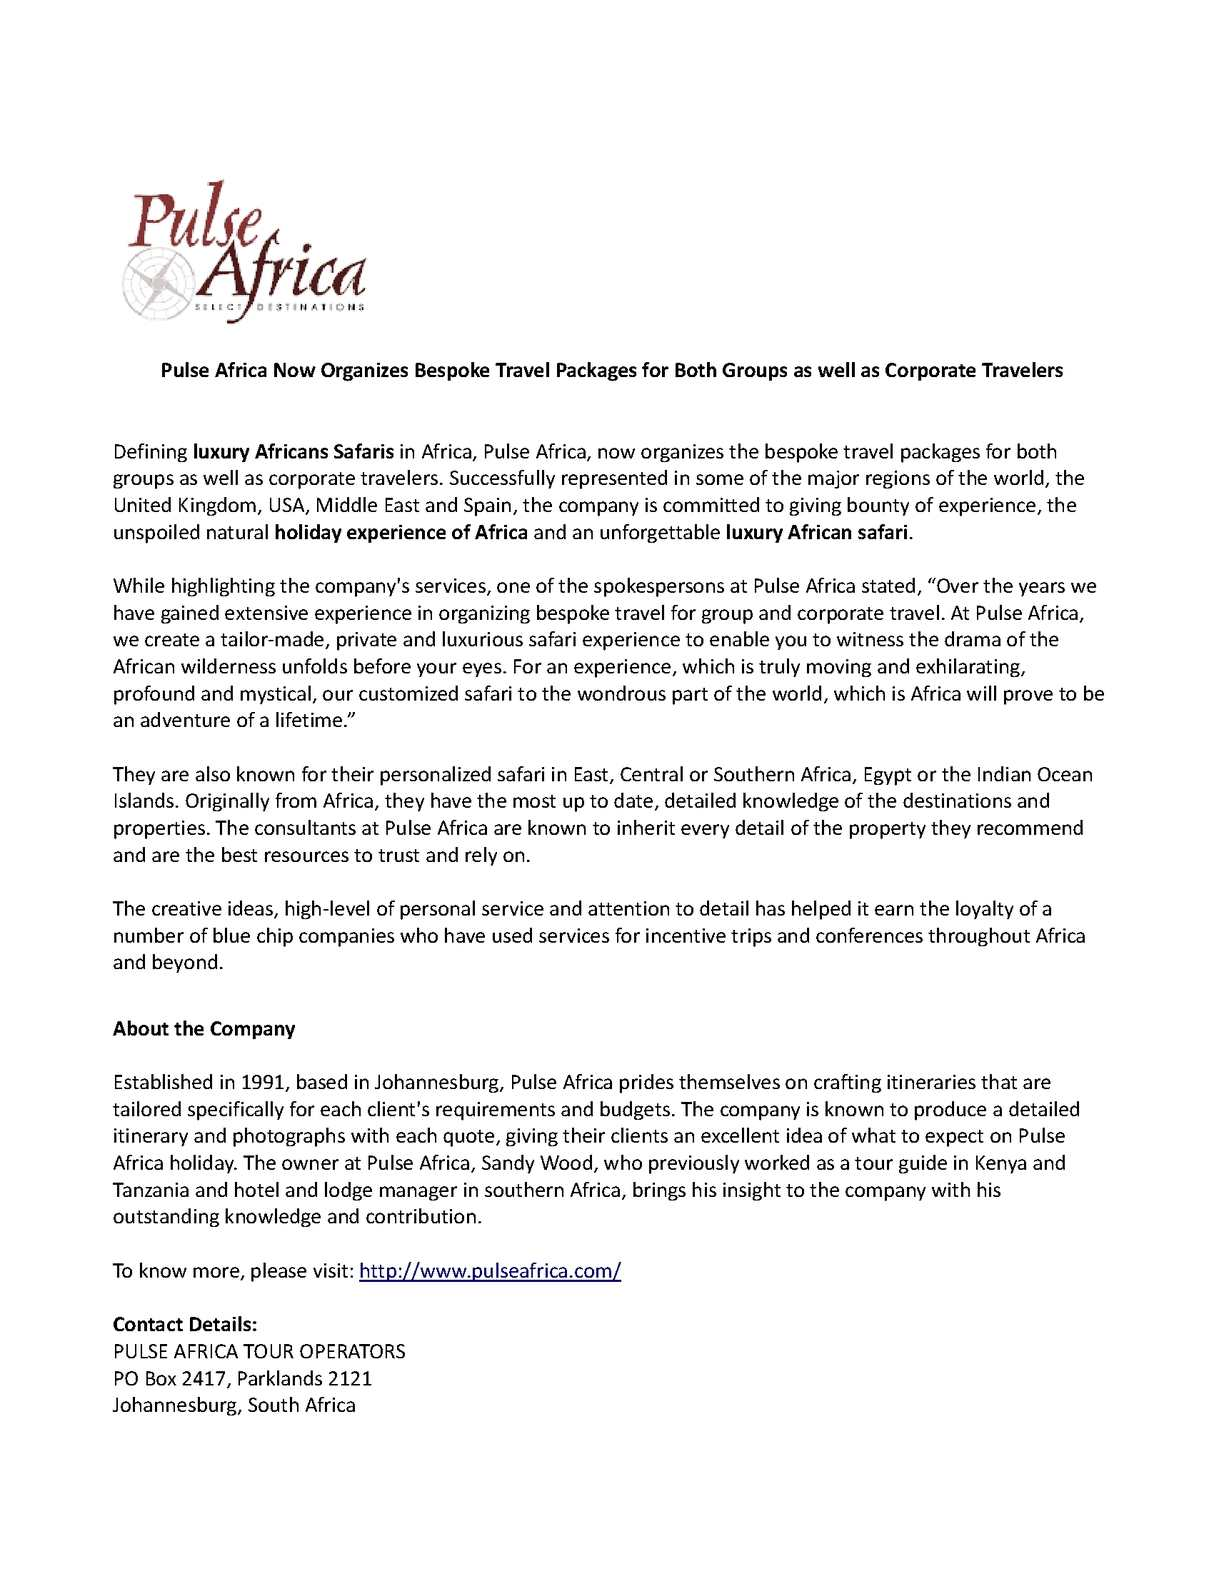 Calaméo - Pulse Africa Now Organizes Bespoke Travel Packages for